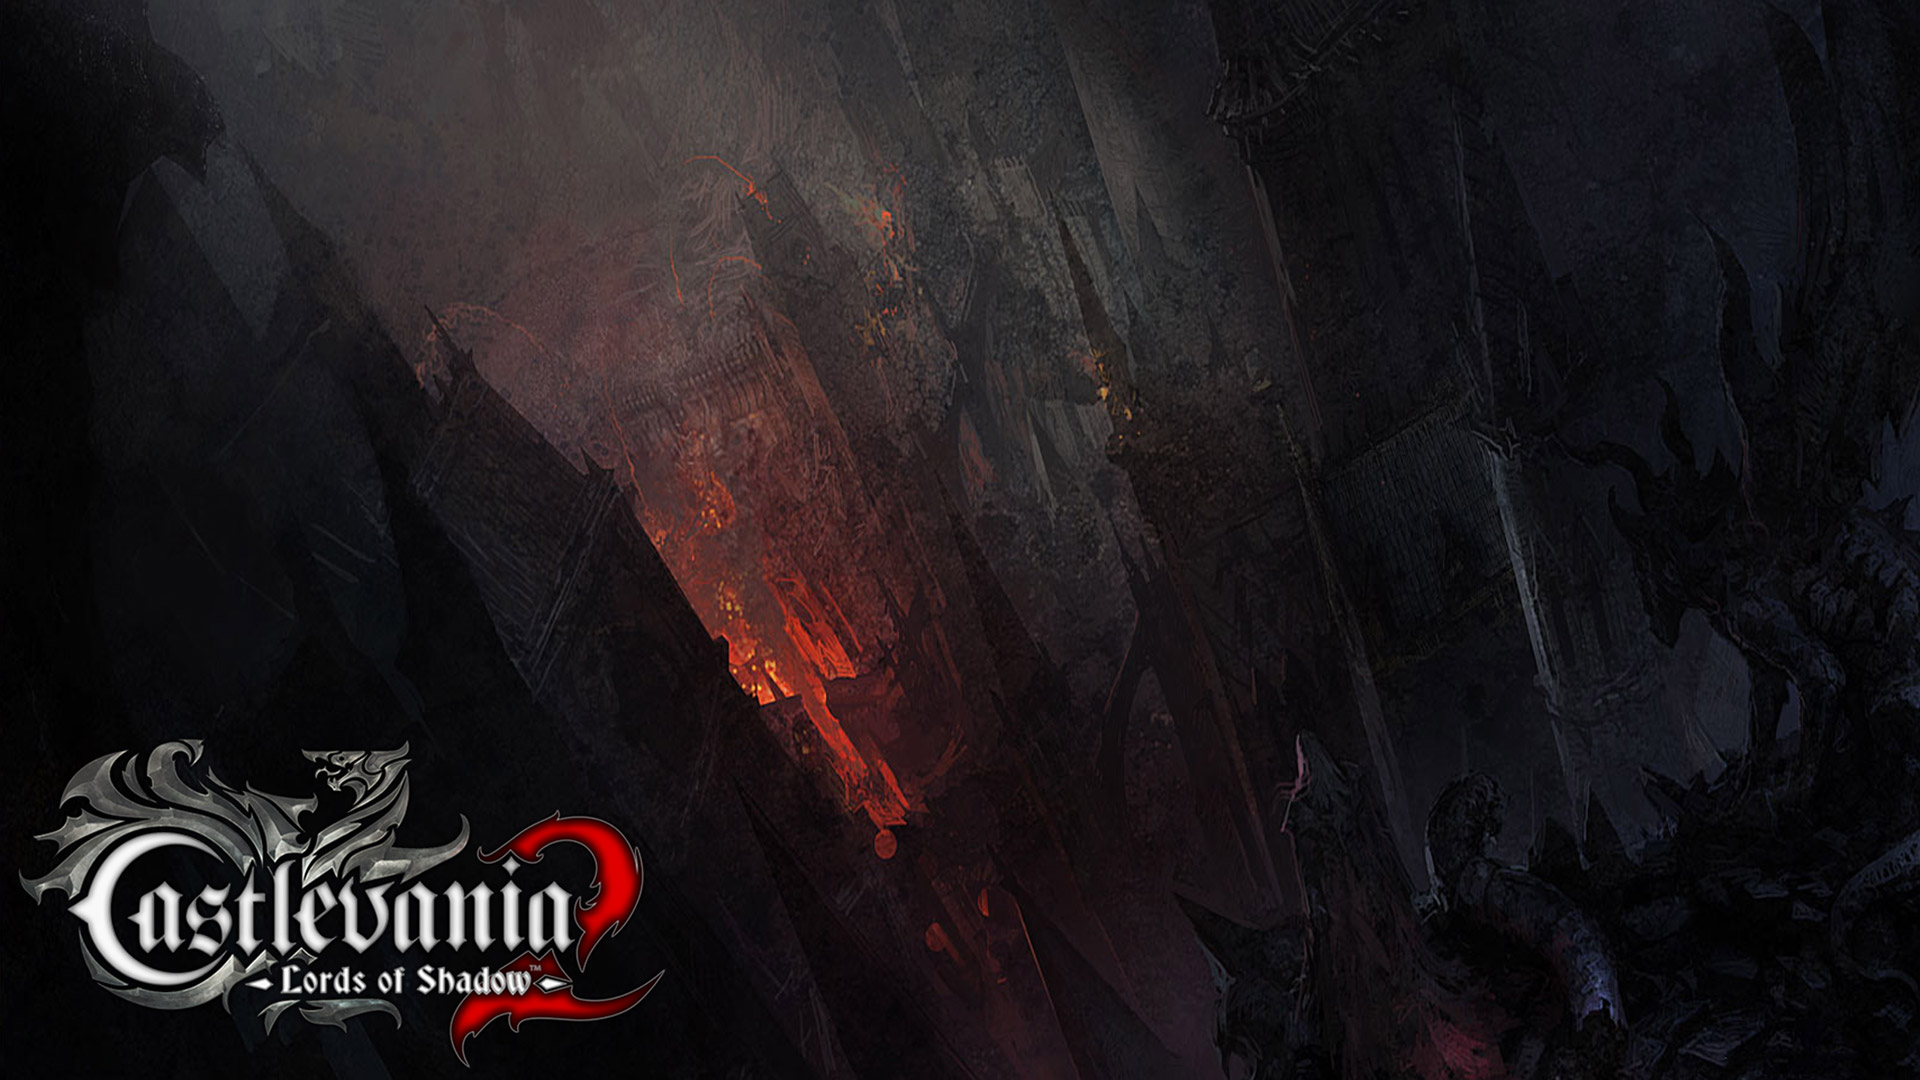 Castlevania: Lords of Shadow 2 Wallpaper in 1920x1080